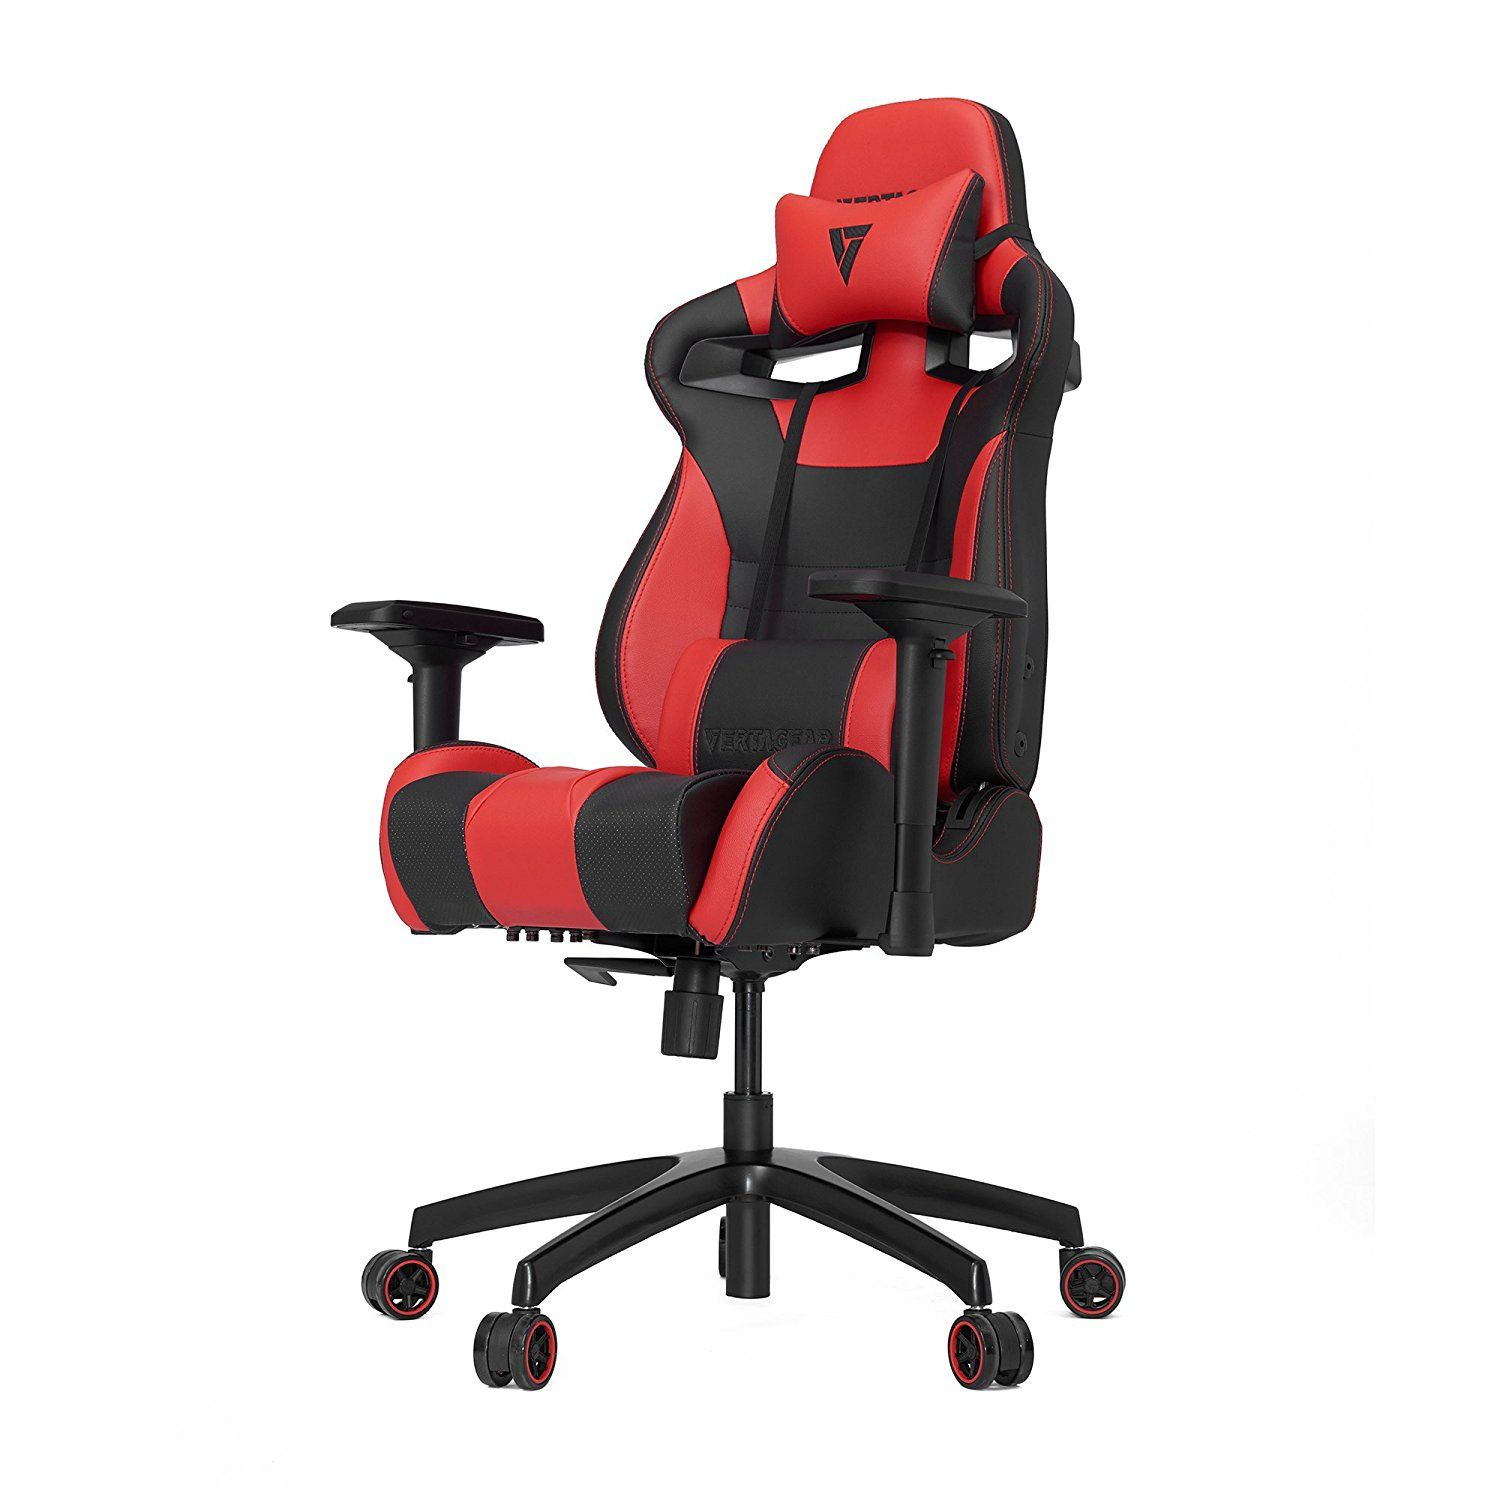 The Best Gaming Chairs Gaming chair, Racing chair